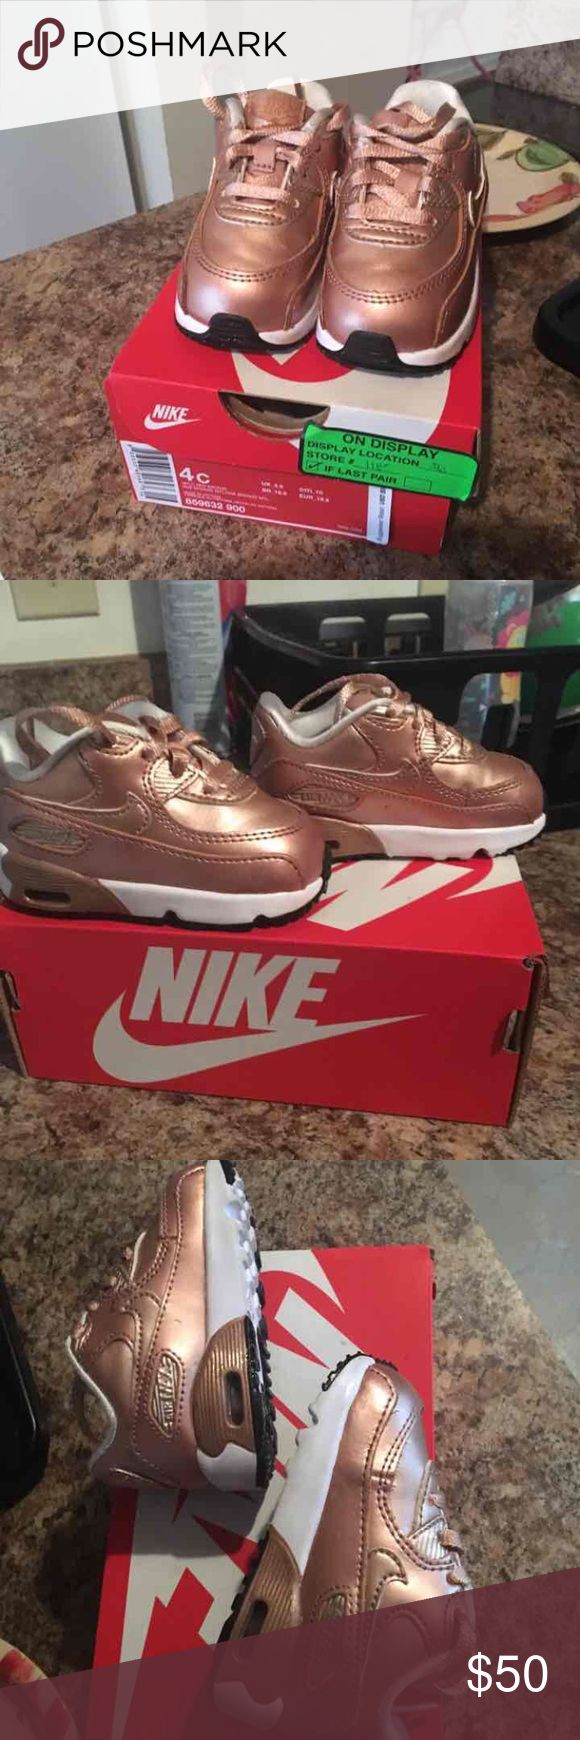 Rose gold Nike air max Rose gold/bronze (like new no scratches or dents) Nike air max size 4c Box included Nike Shoes Sneakers